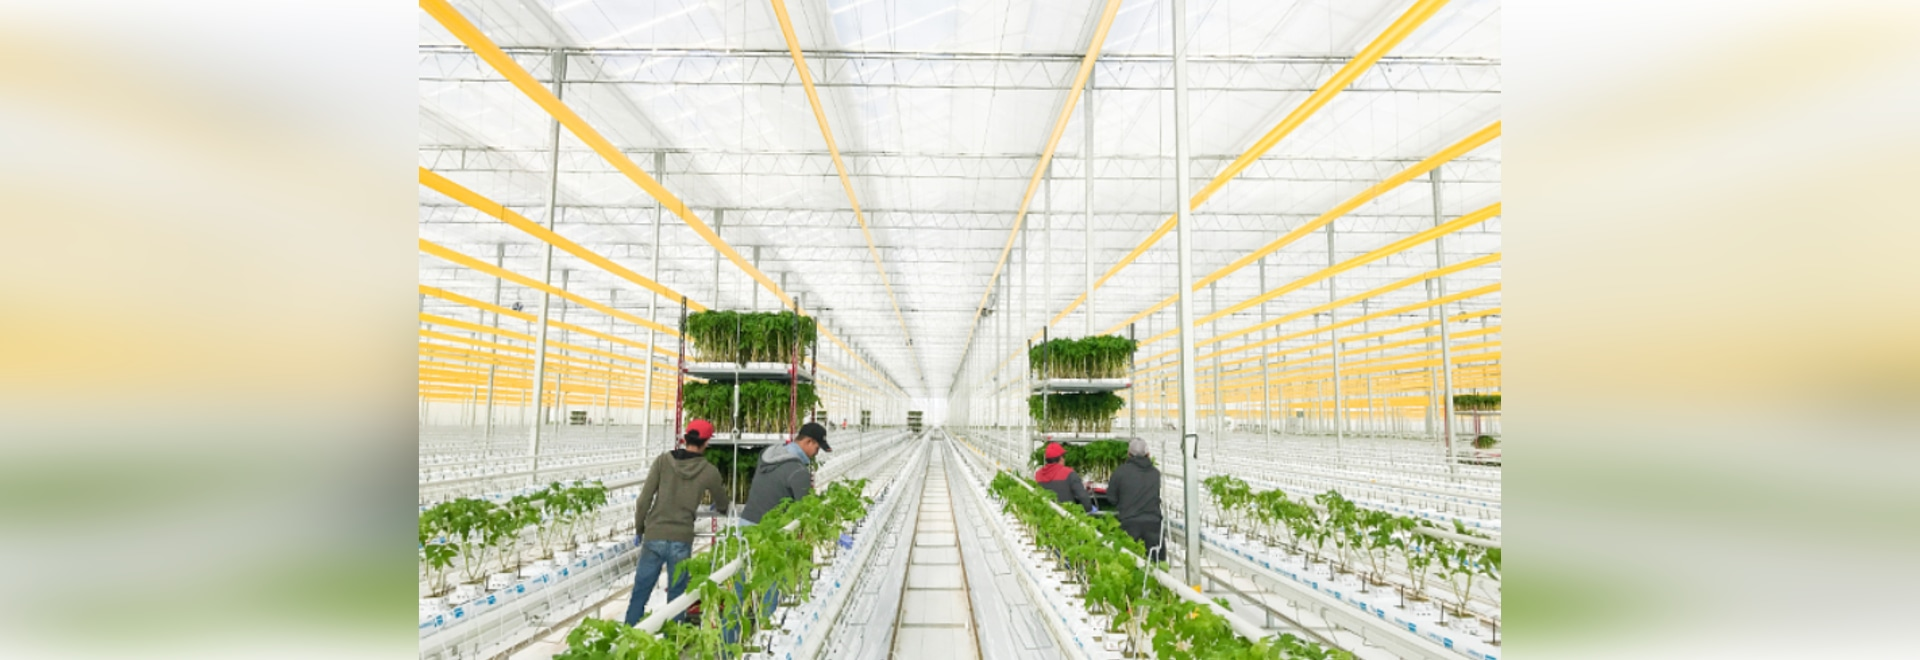 Innovation funding for greenhouse automation research welcomed